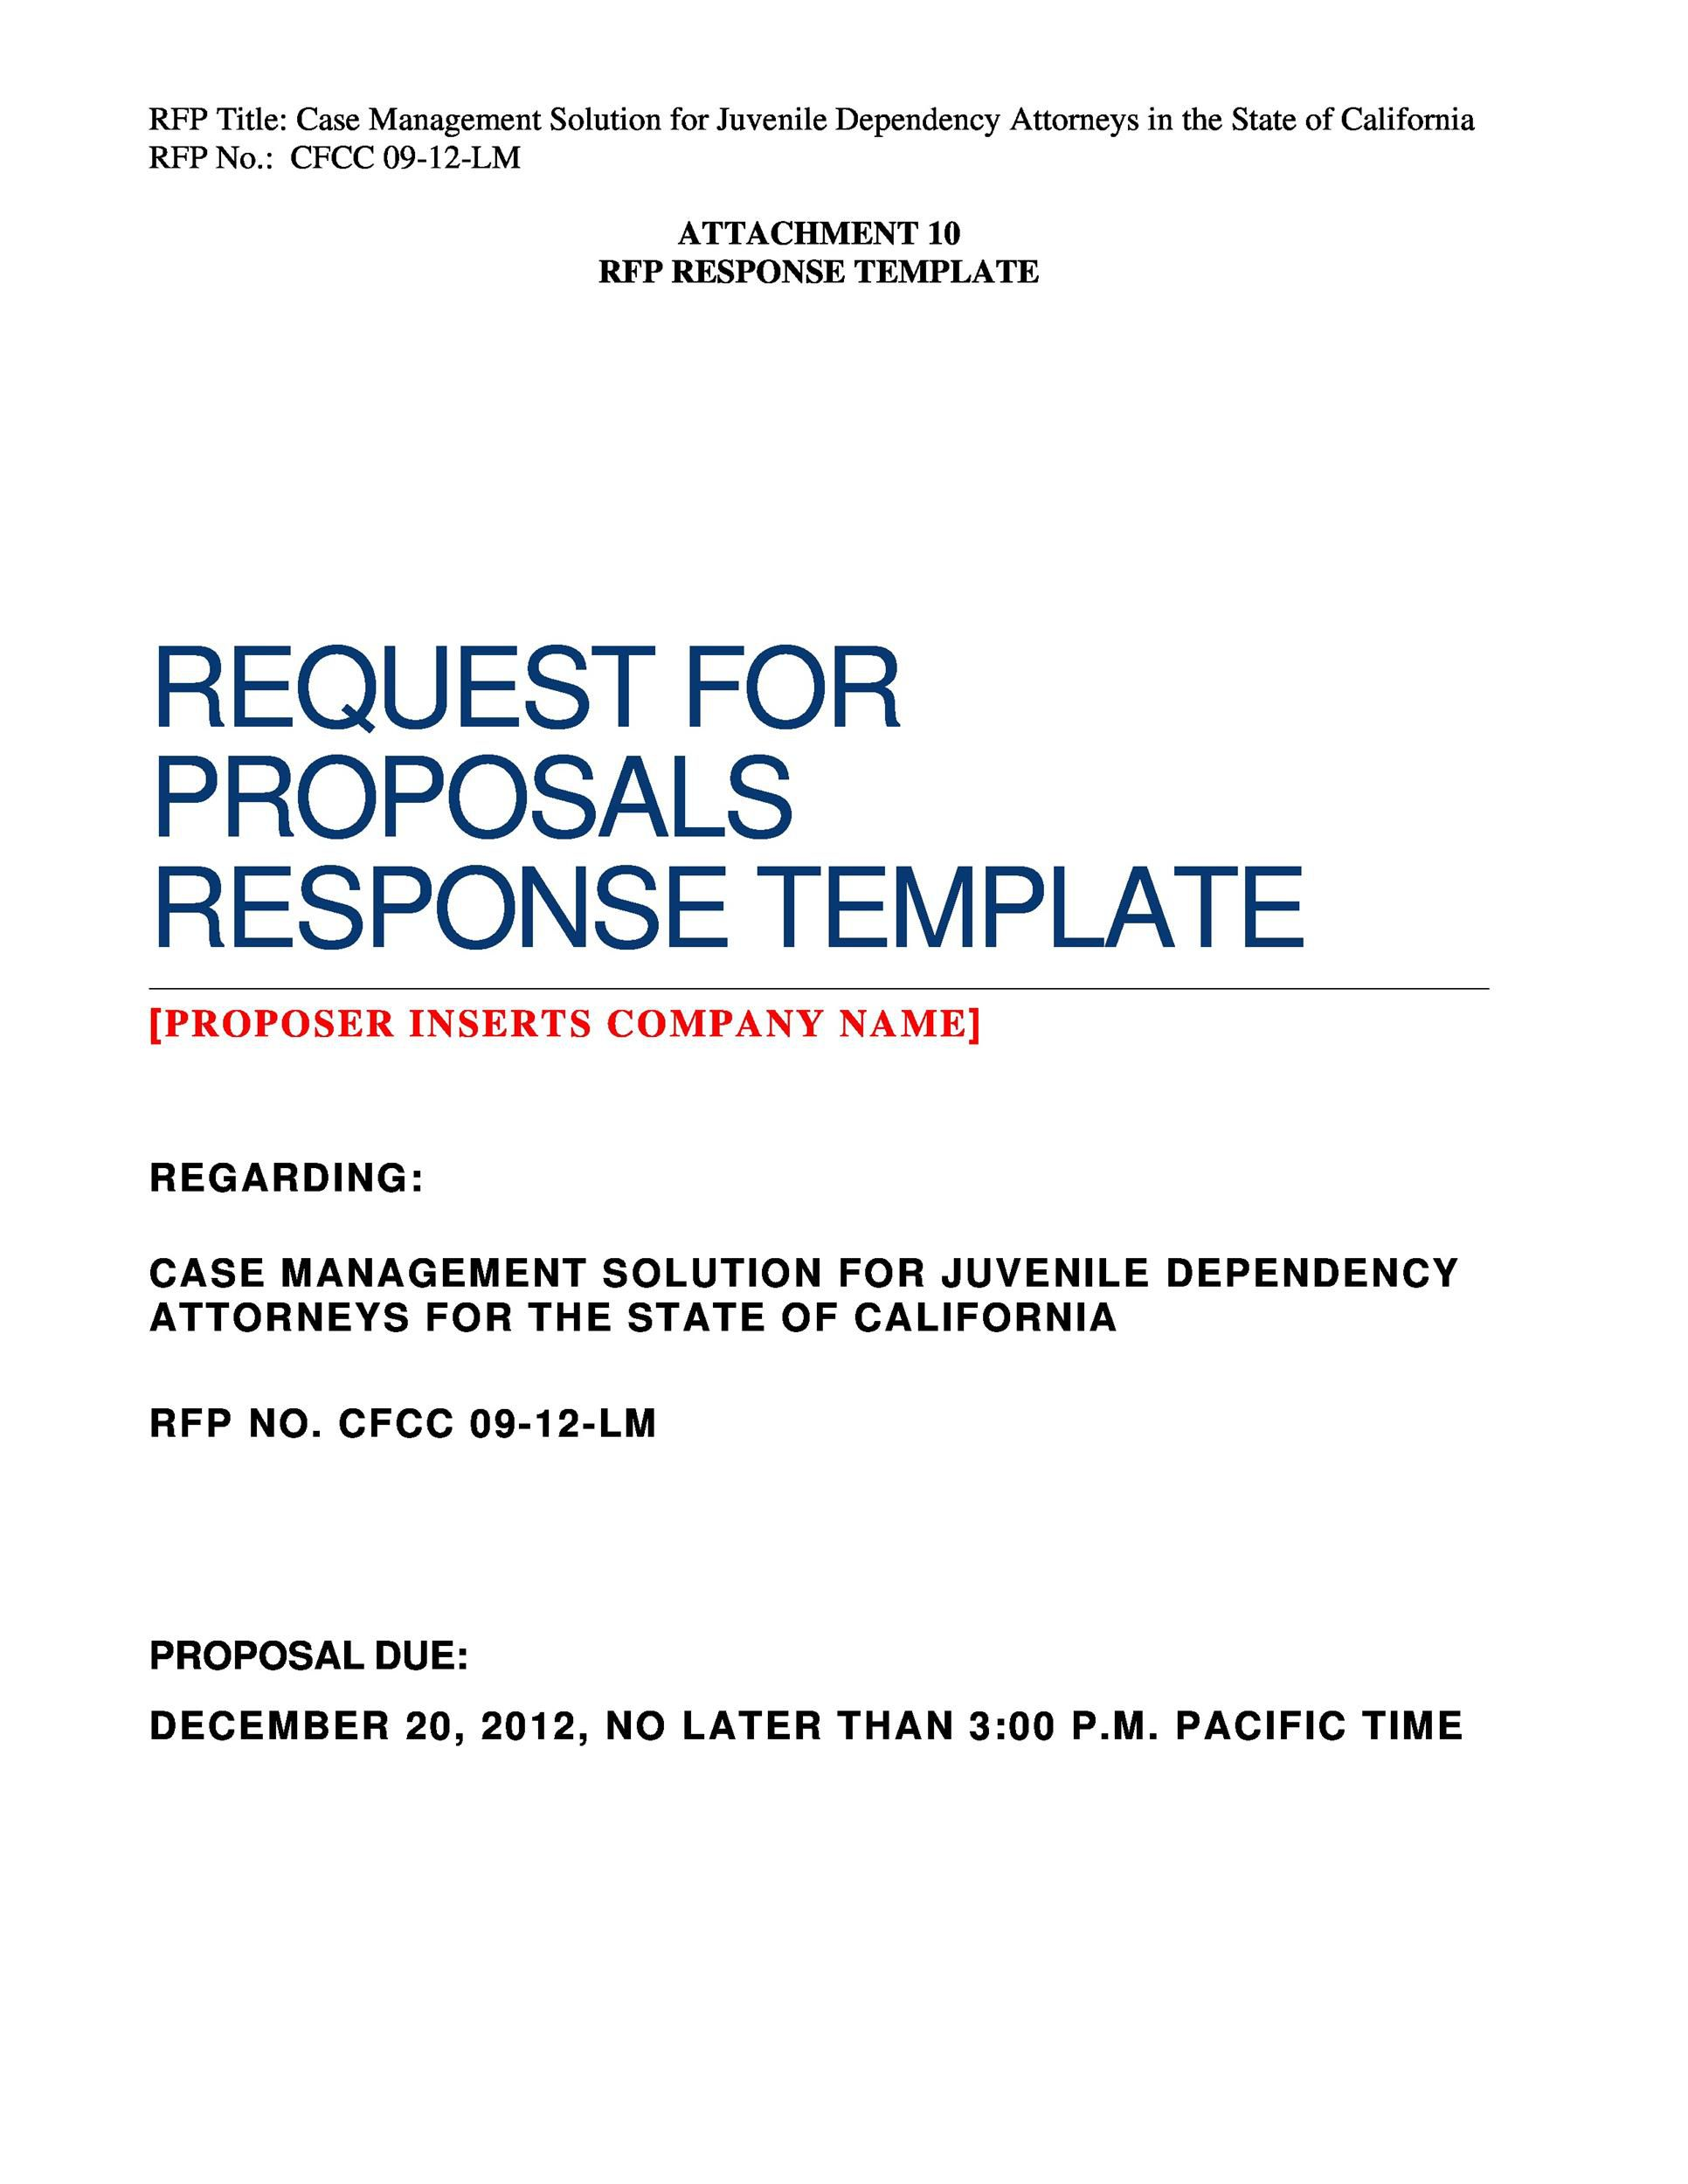 008 Stupendou Request For Proposal Response Template Free High Resolution Full